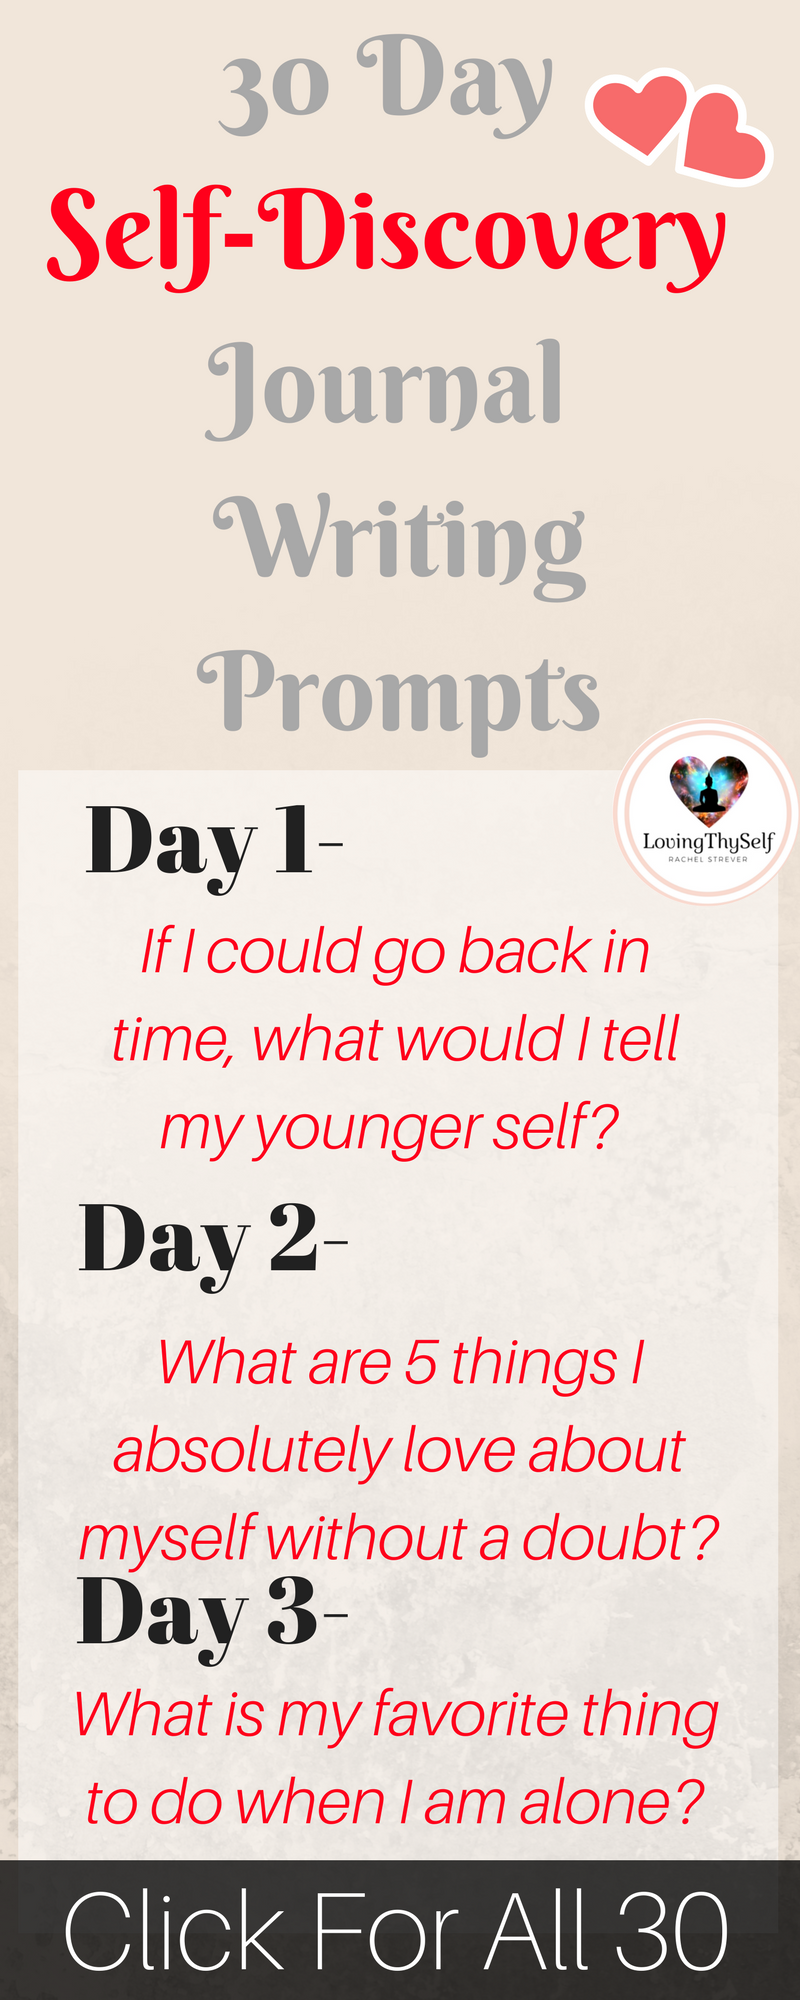 53 Daily Writing Prompts for Adults ⋆ JournalBuddies.com  |Daily Journal Prompts For Adults